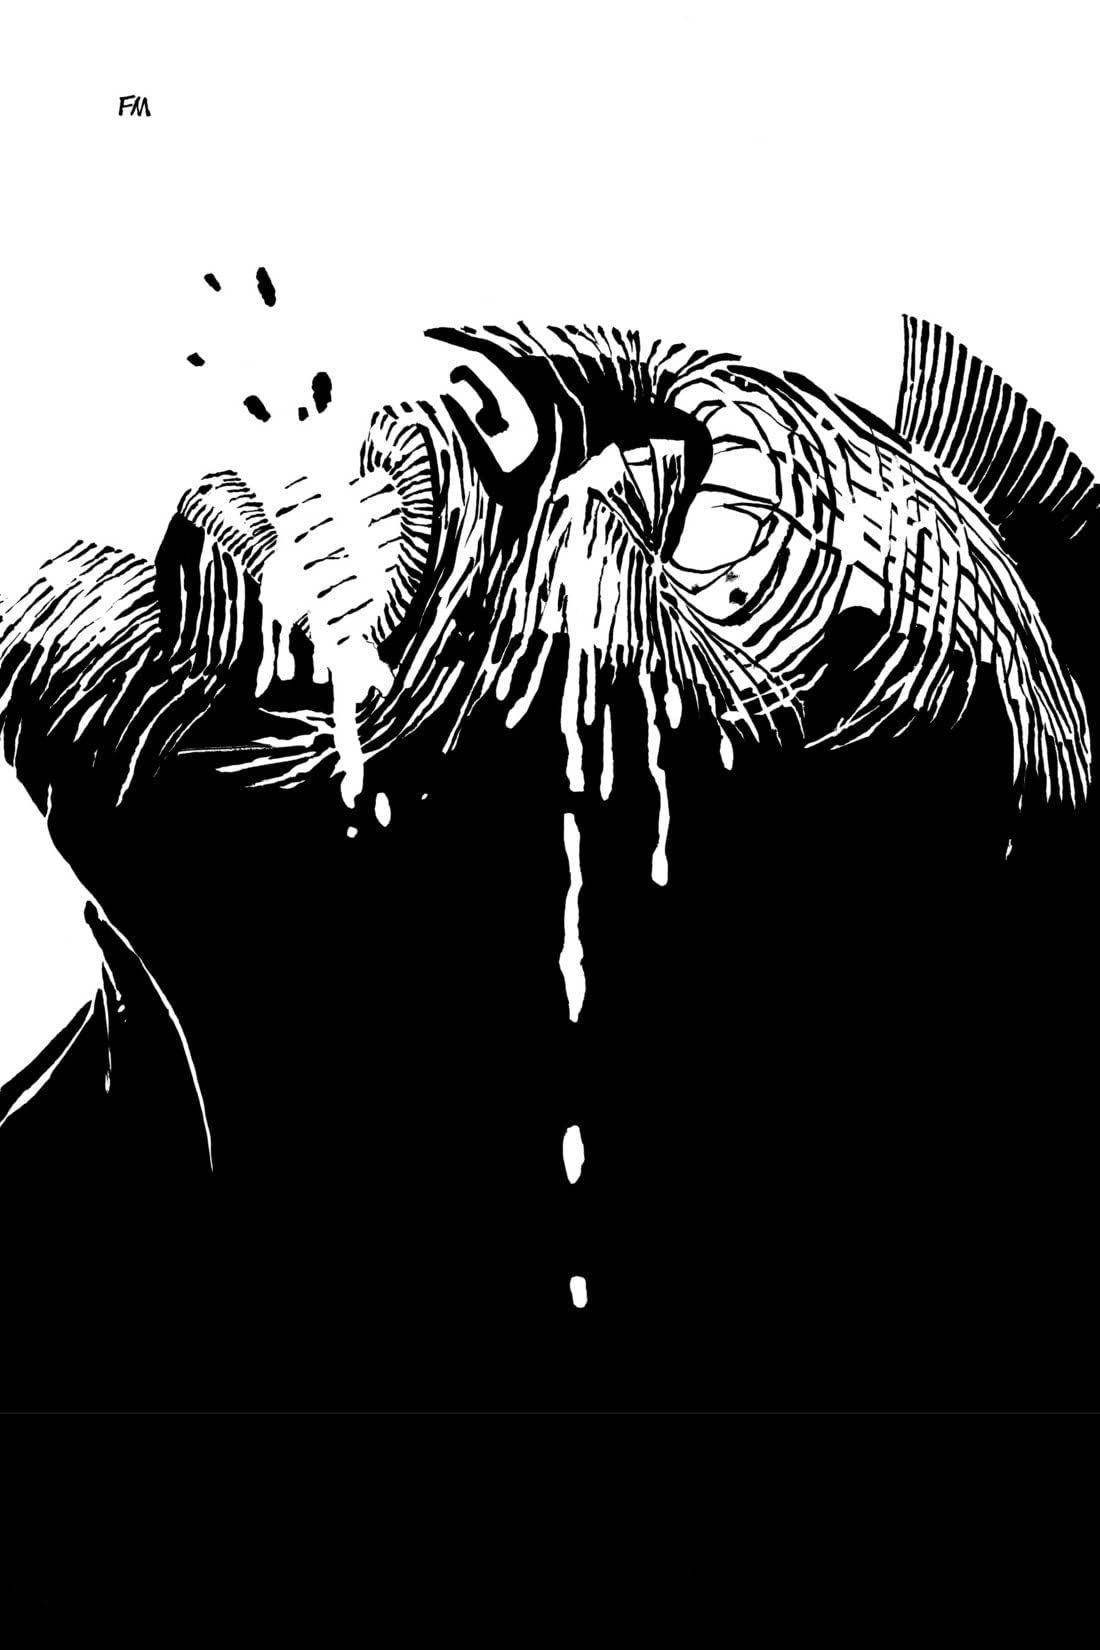 Frank Miller's Sin City Vol. 1: The Hard Goodbye